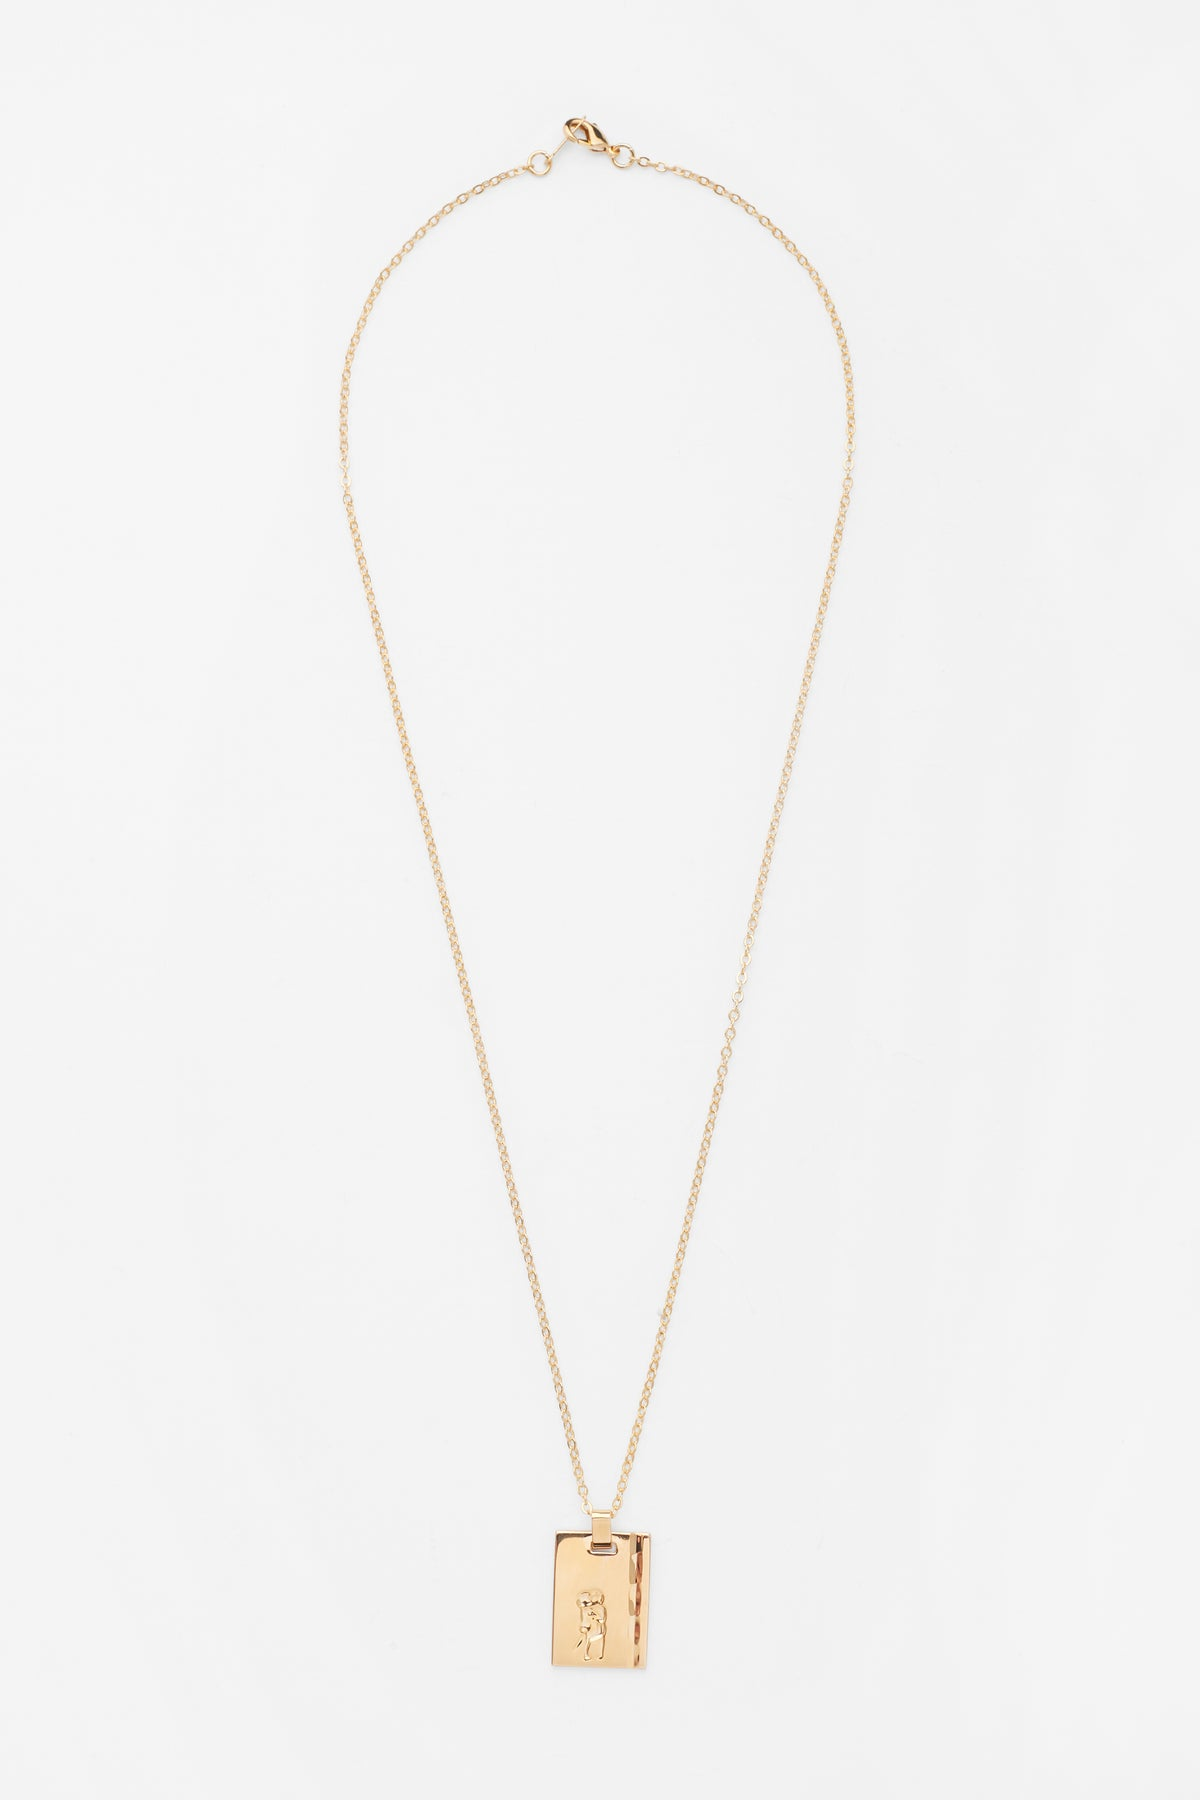 Gold Star Sign Necklace Gemini